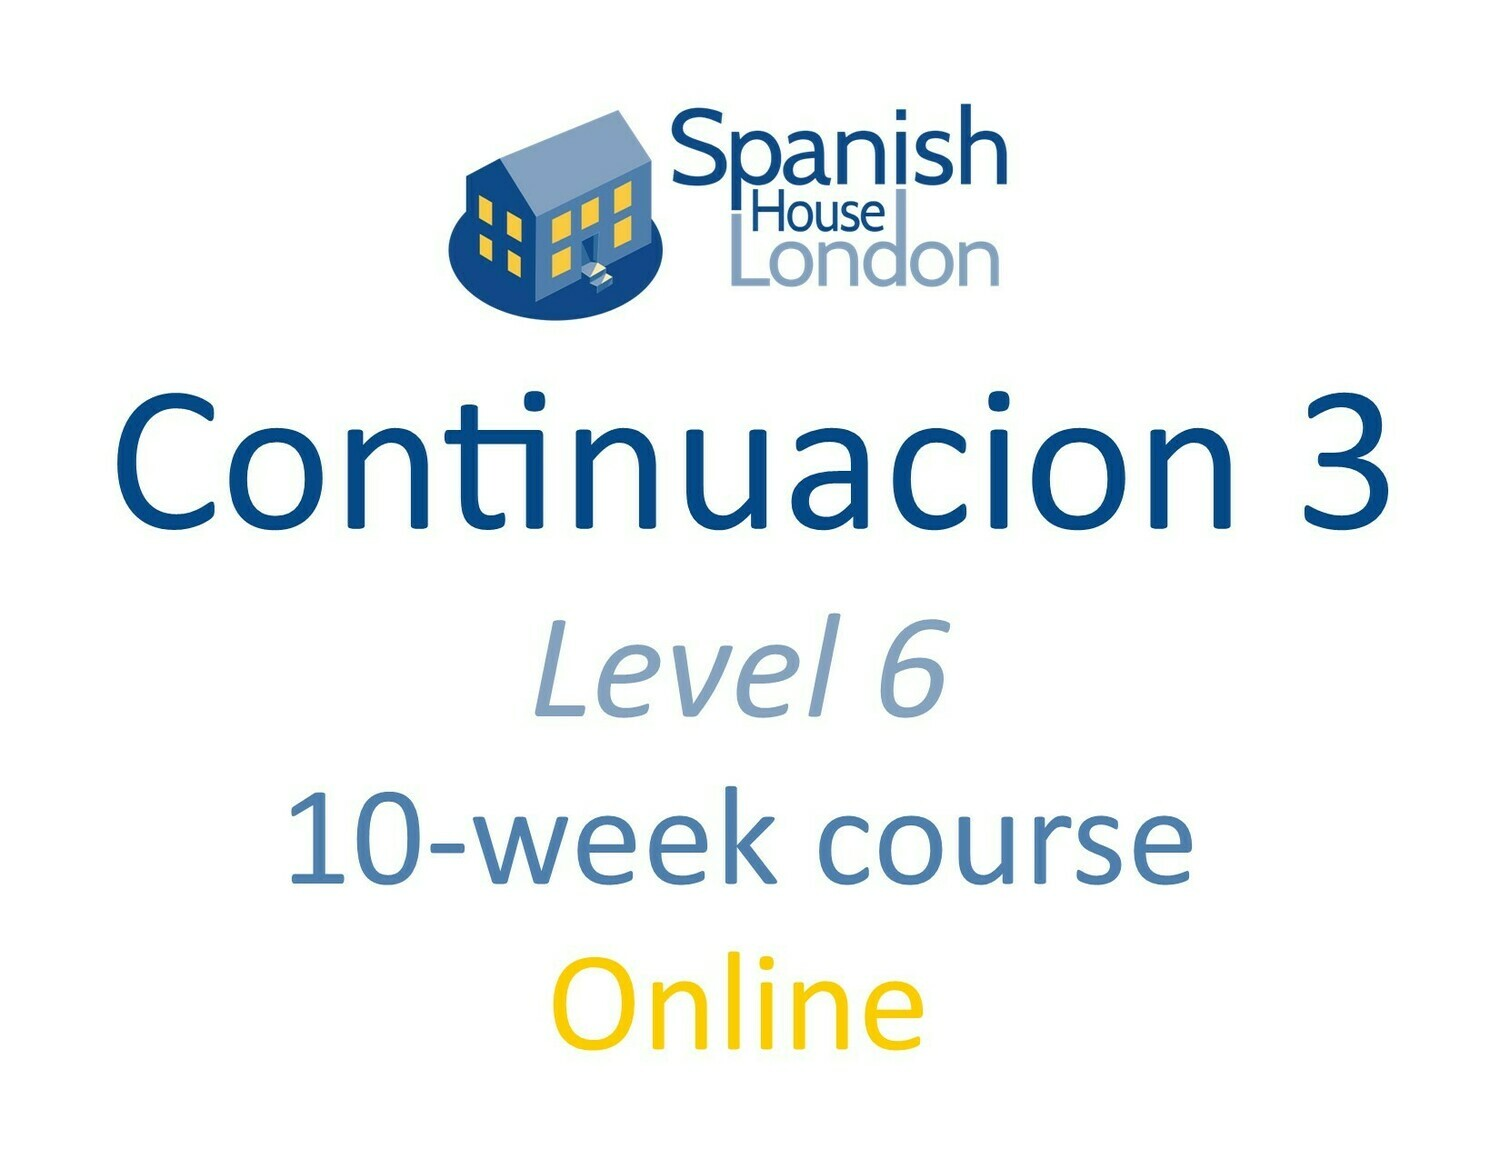 Continuacion 3 Course starting on 25th May at 7.30pm